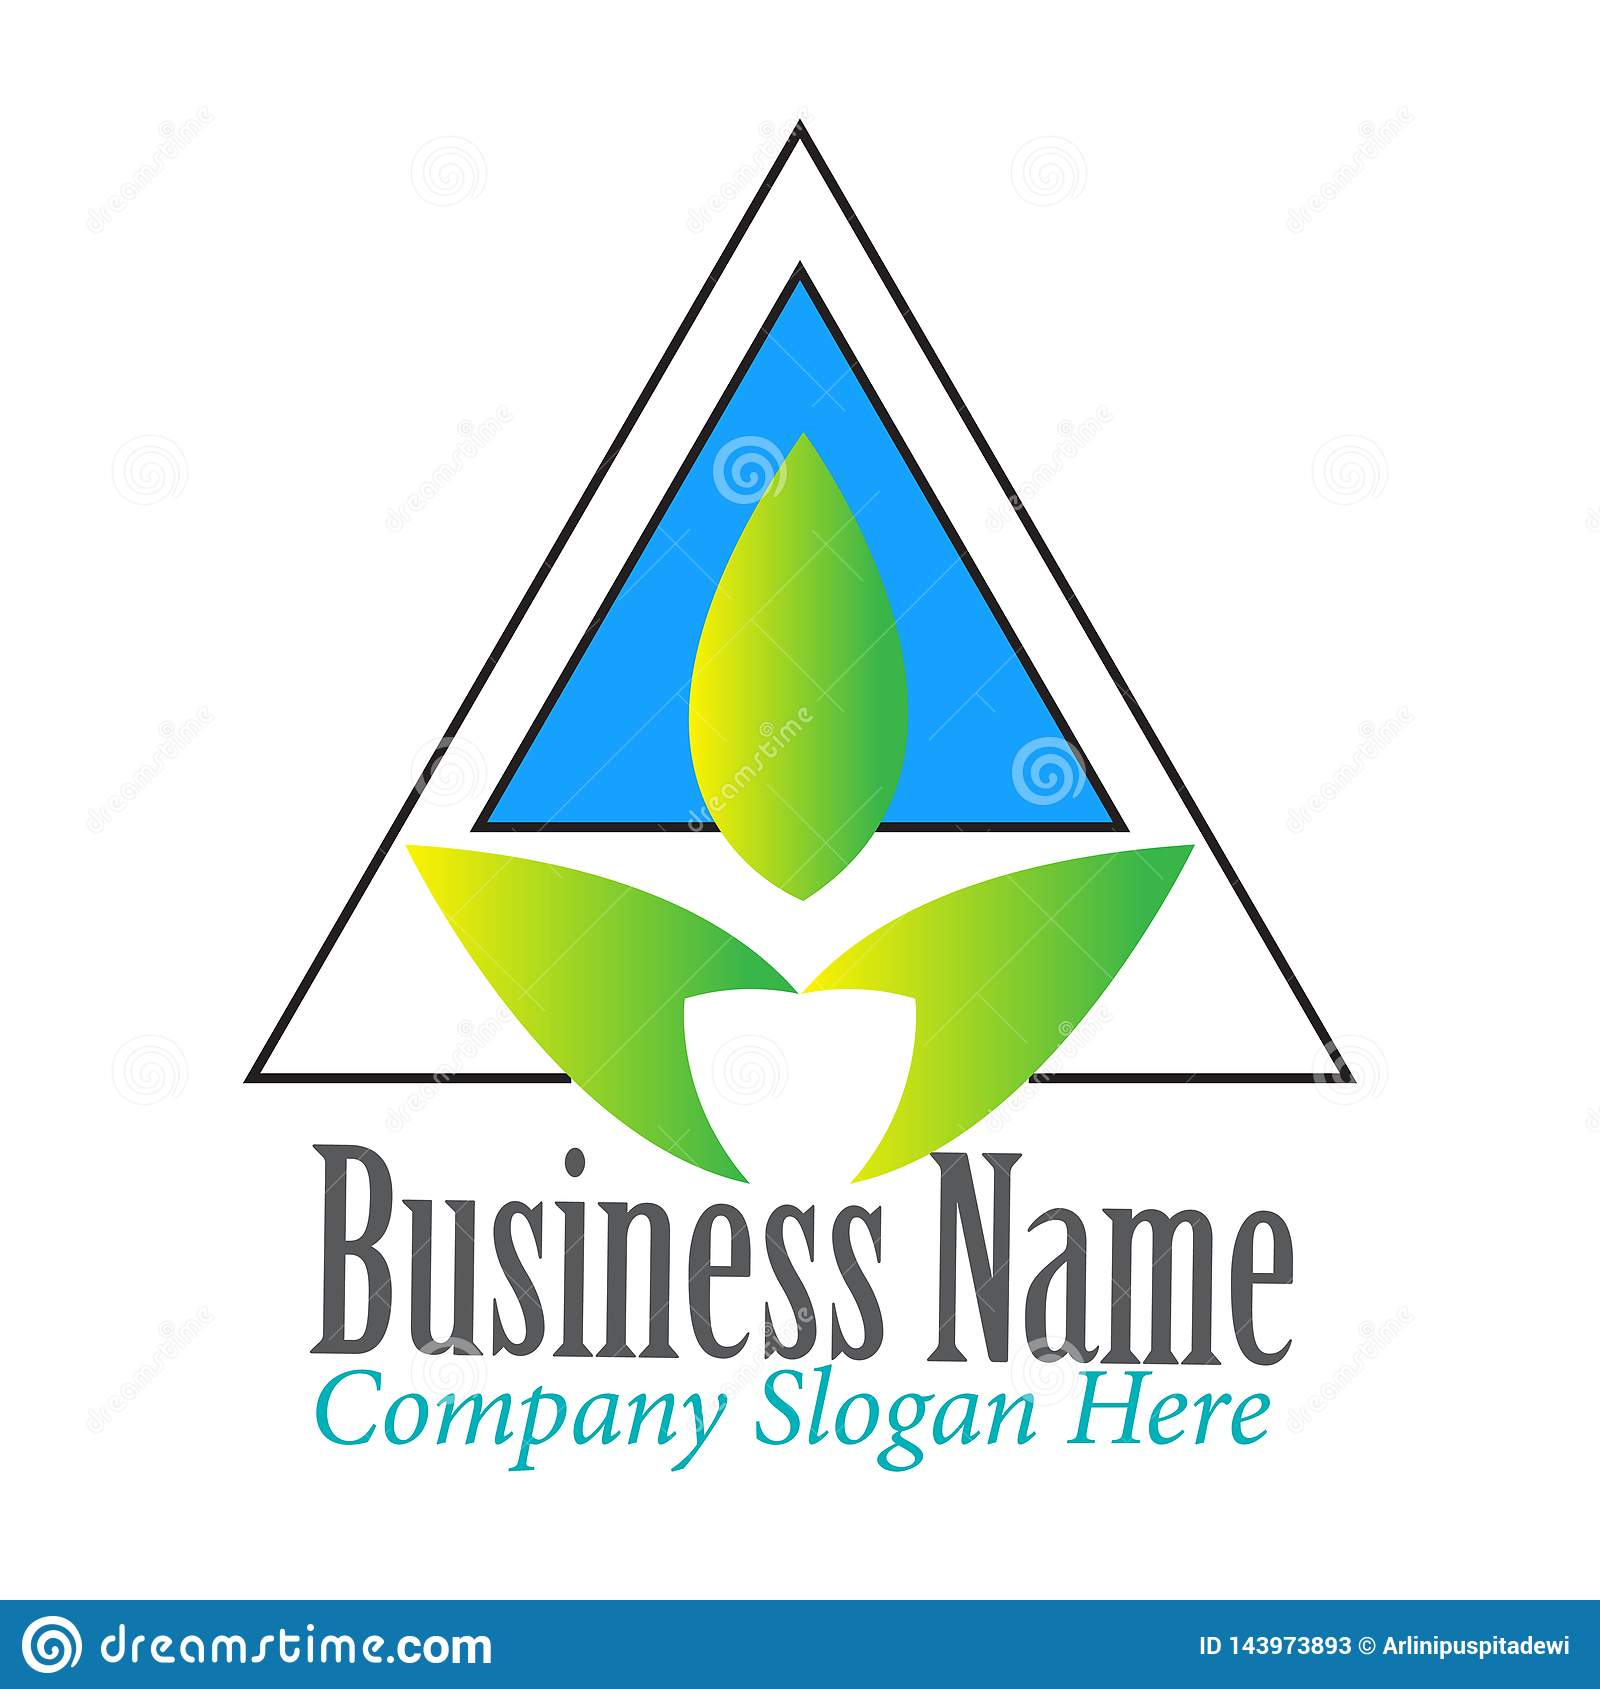 Simple Modern Triangle with Leaf logo design inspiration